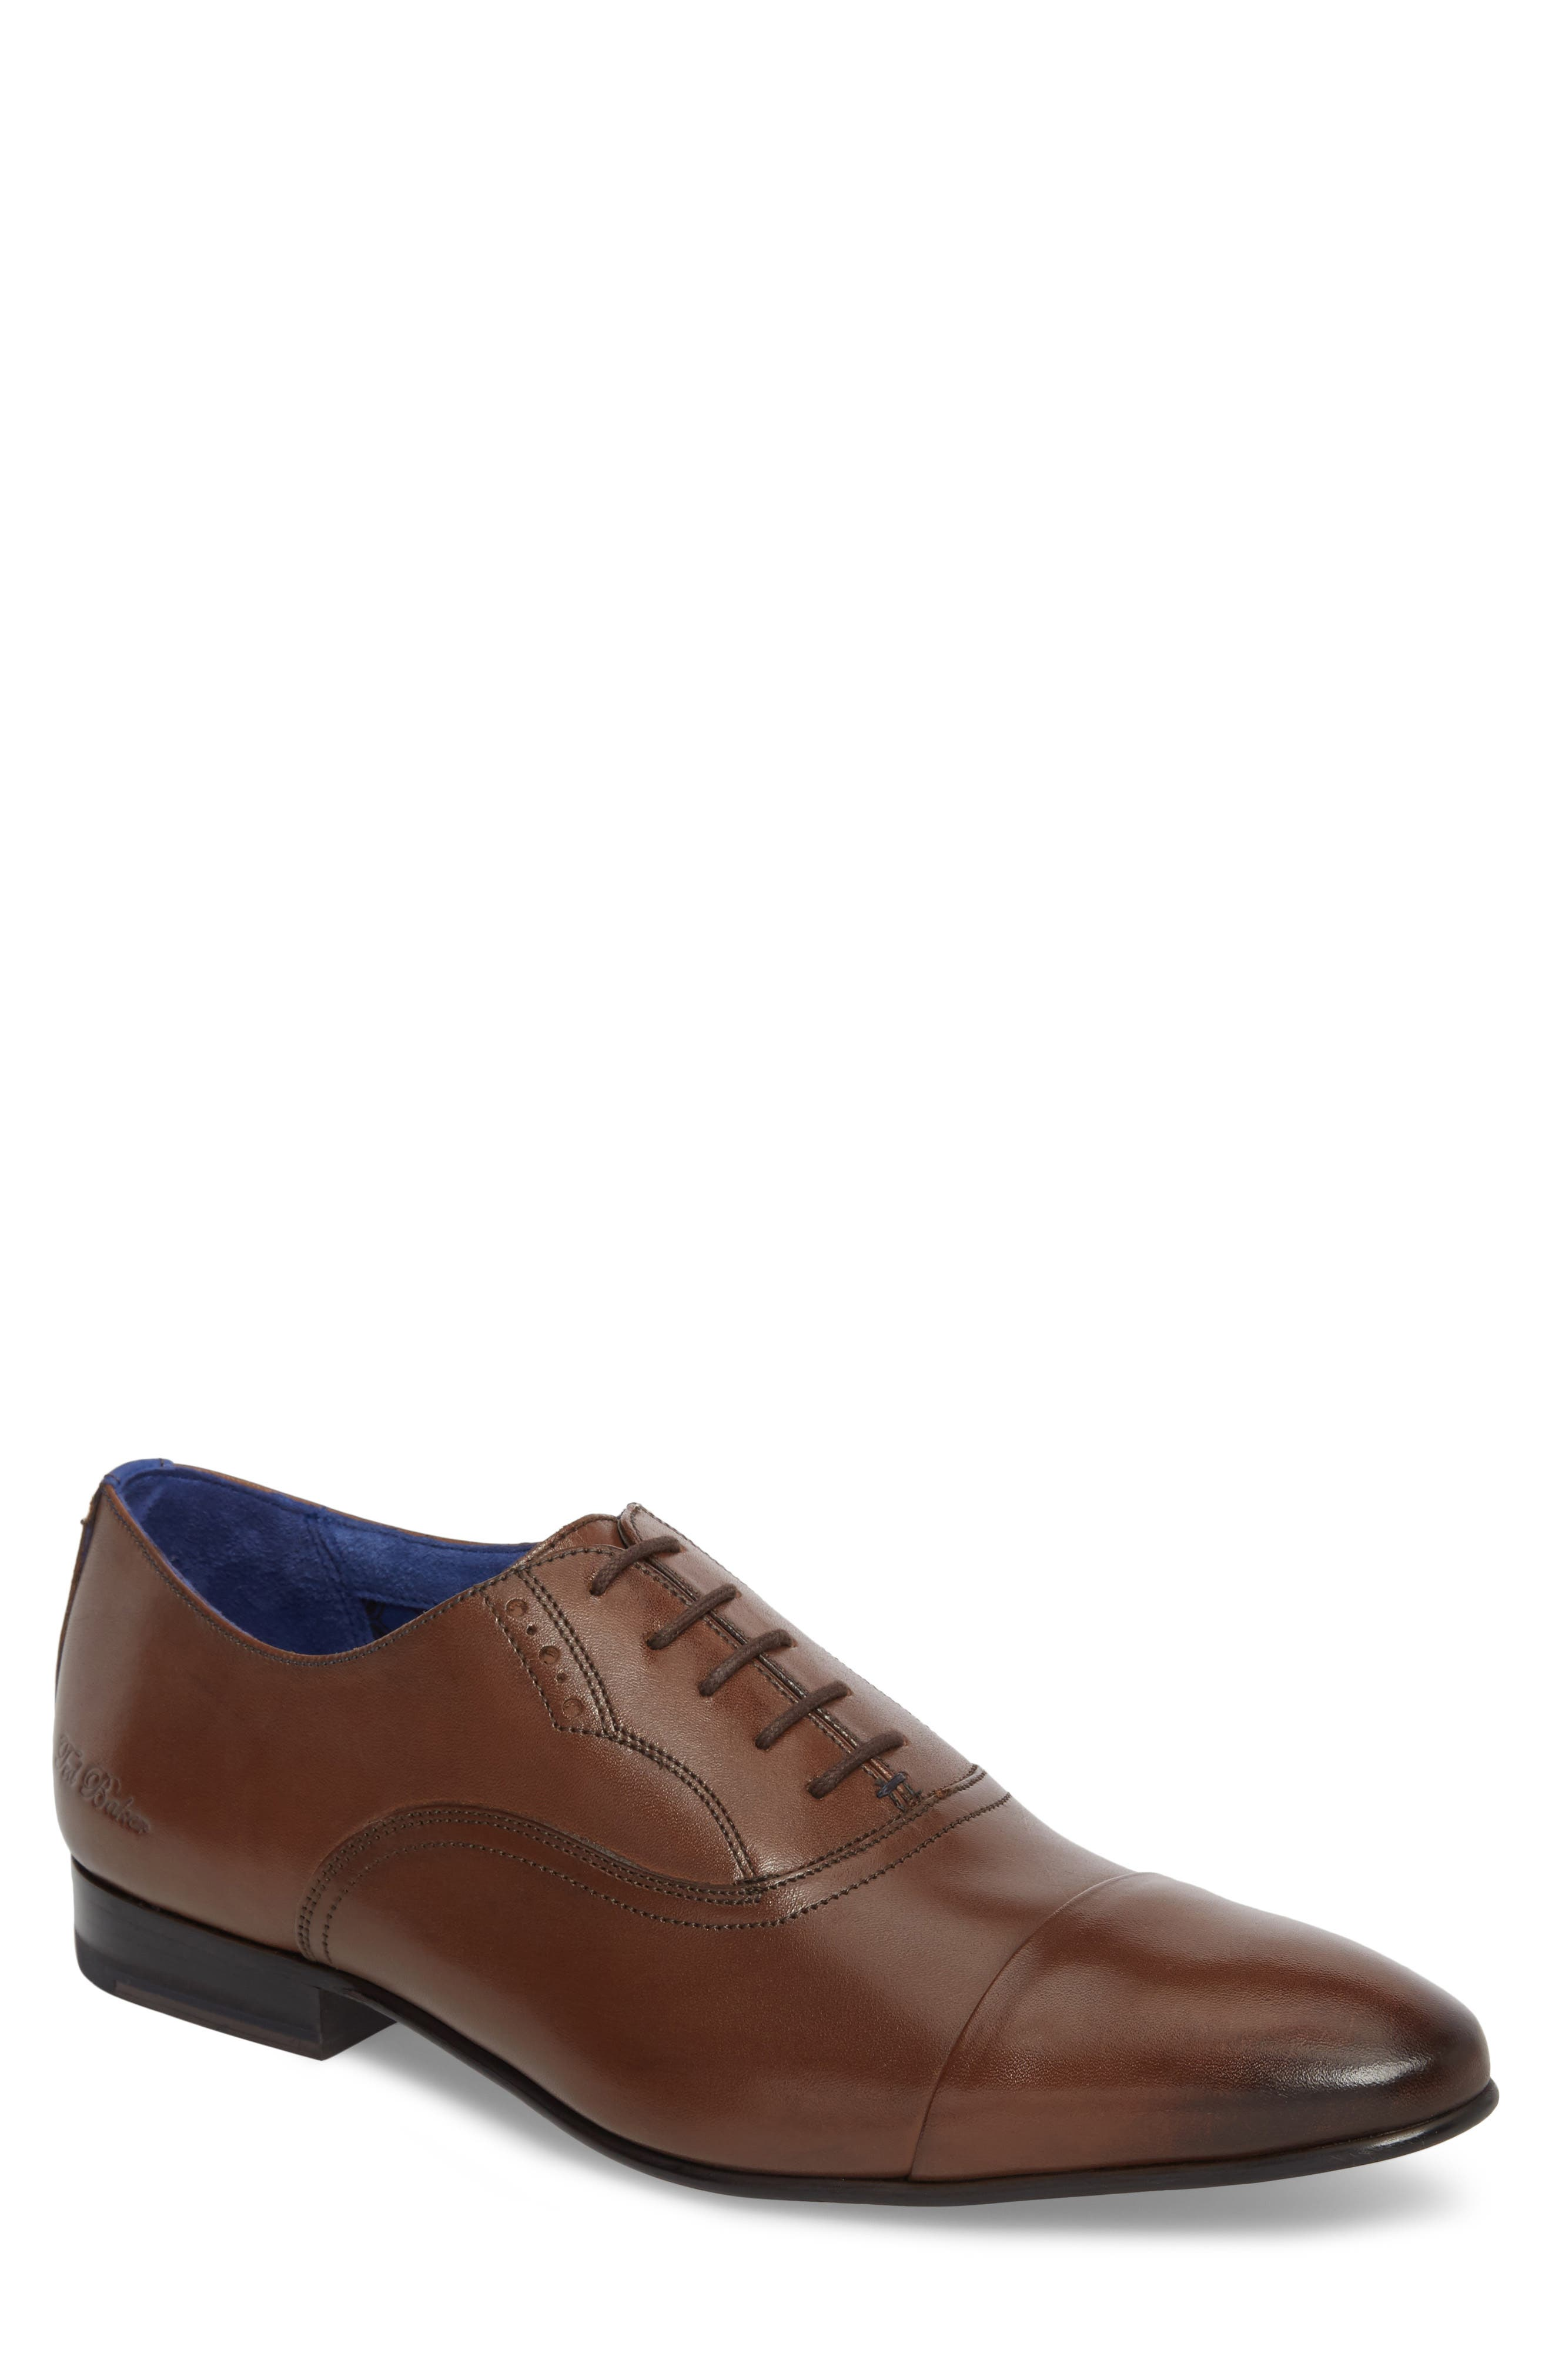 Murain Cap Toe Oxford,                             Main thumbnail 3, color,